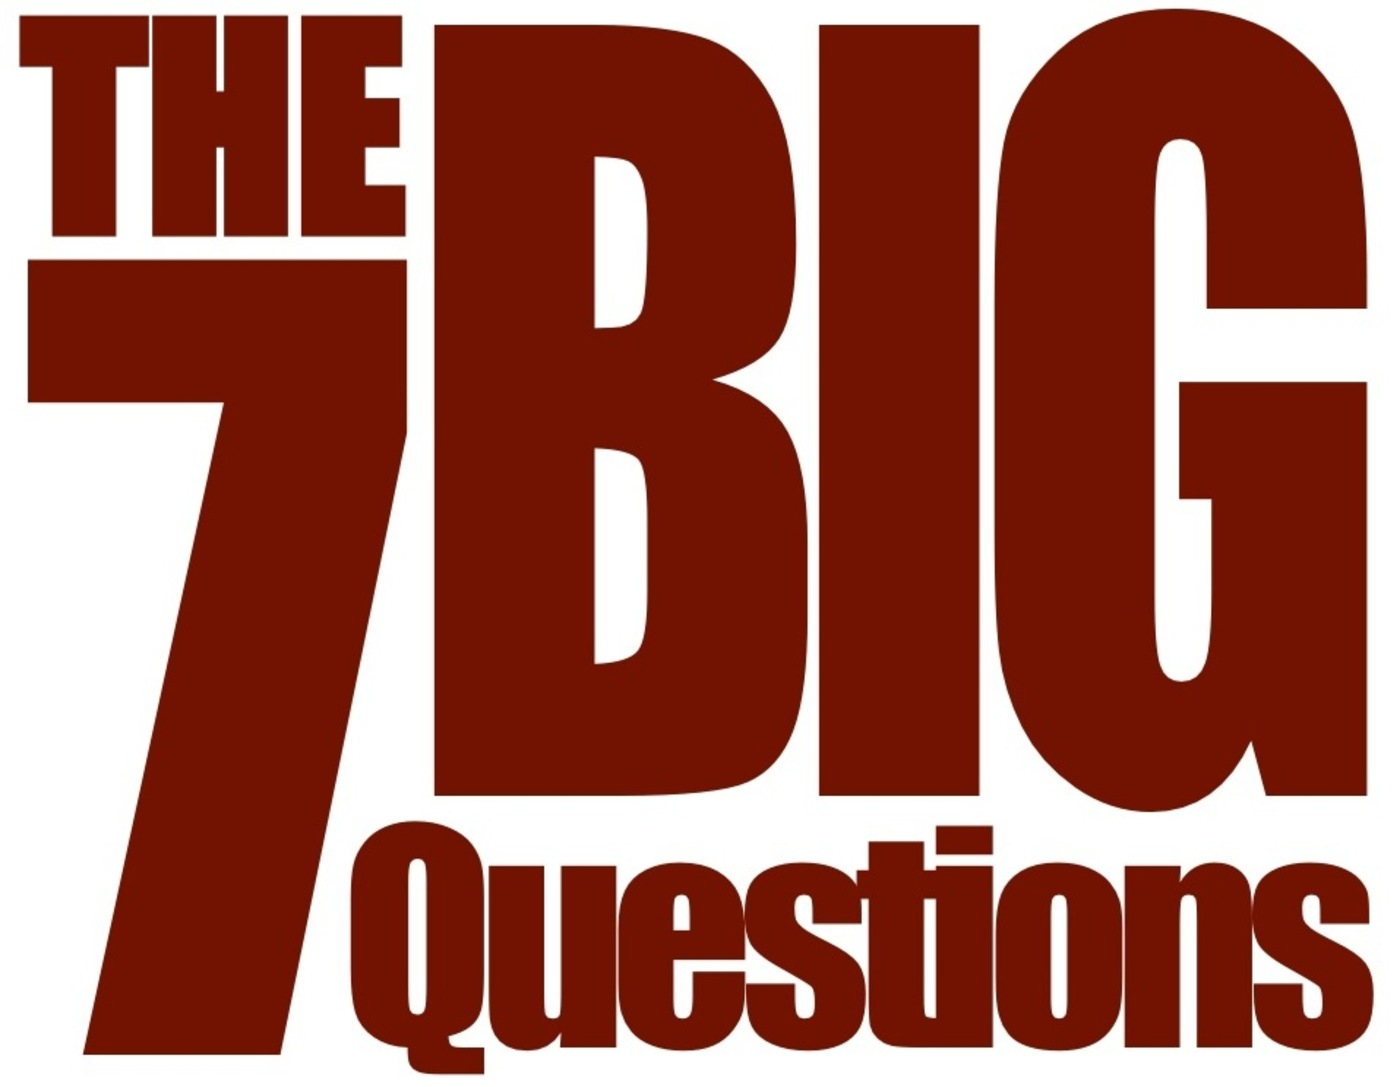 ...creating YOUR 7 Big Questions to get YOUR answers that YOU NEED to create the life YOU want.